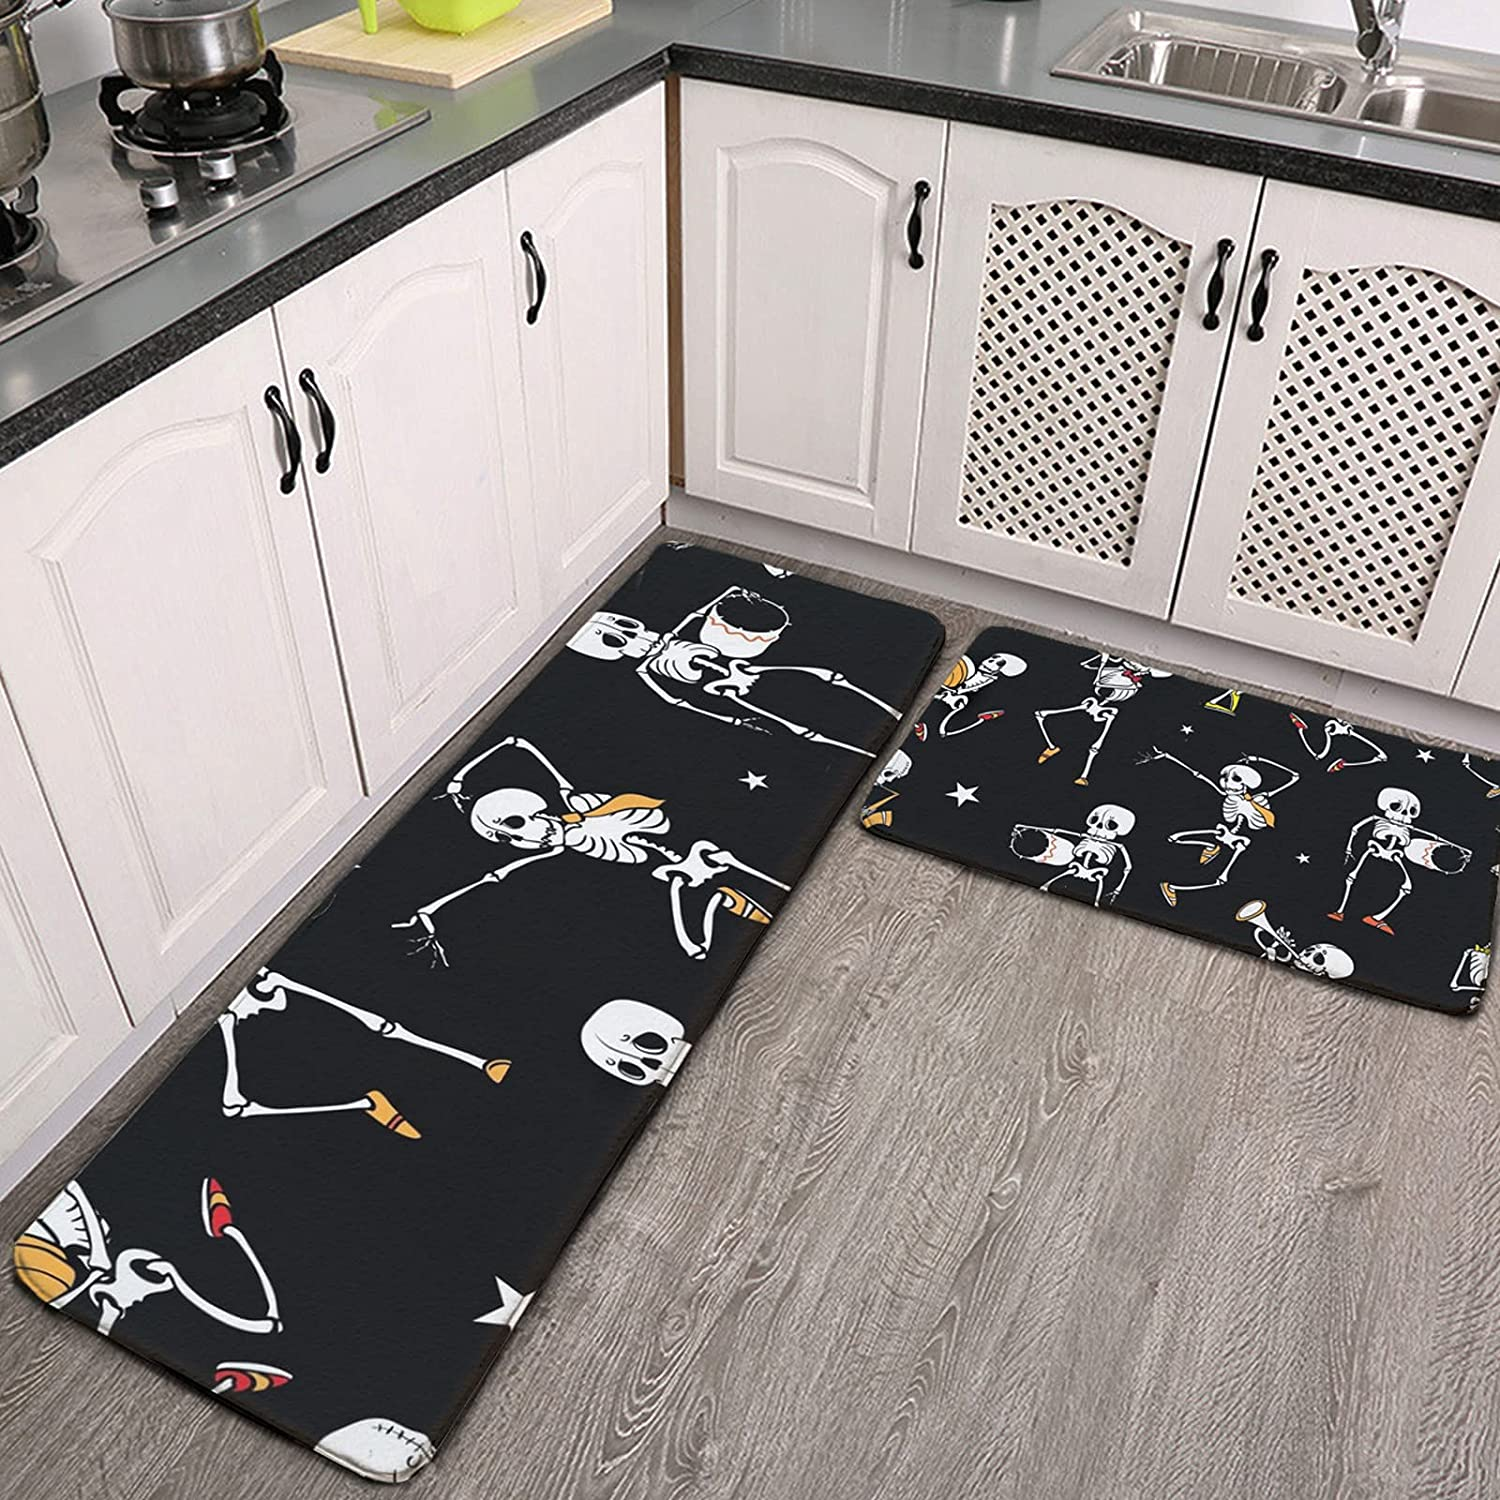 OcuteO Colorado Springs Mall Kitchen Rugs and Mats Set Fort Worth Mall Black And Piece Dancing Dark 2